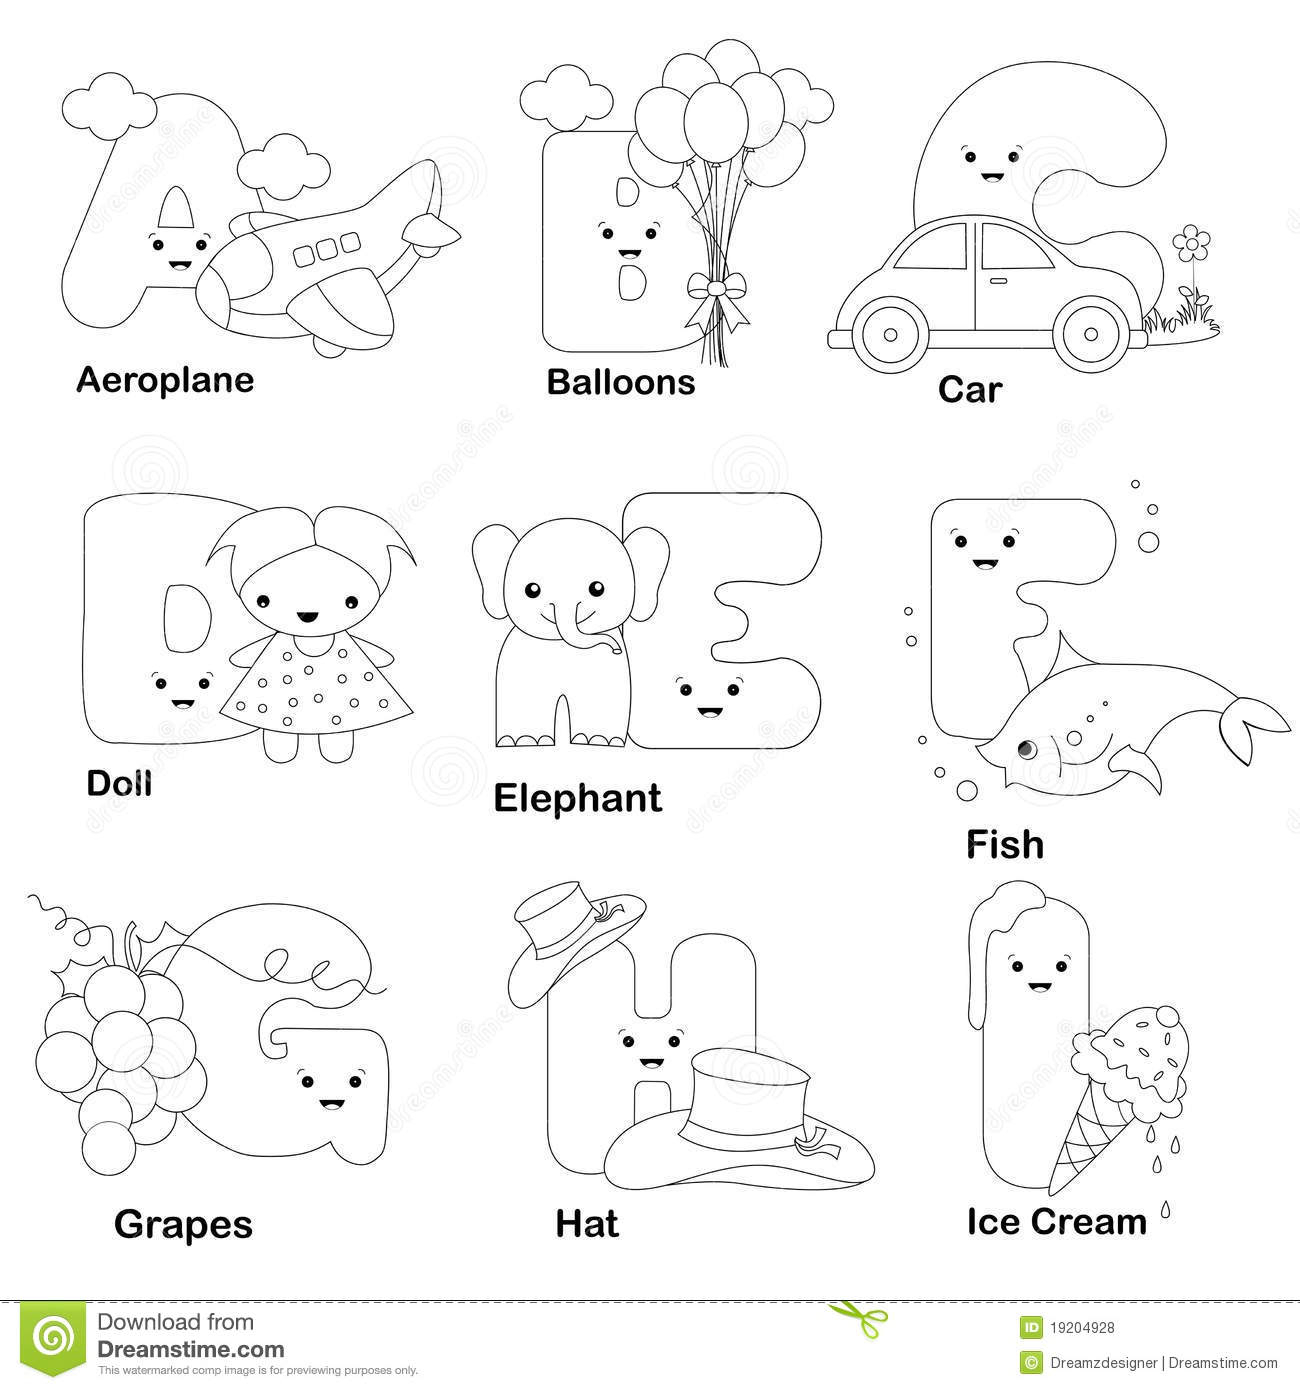 Alphabet Coloring Page Stock Vector. Illustration Of Empty intended for Alphabet Coloring Worksheets For Preschoolers